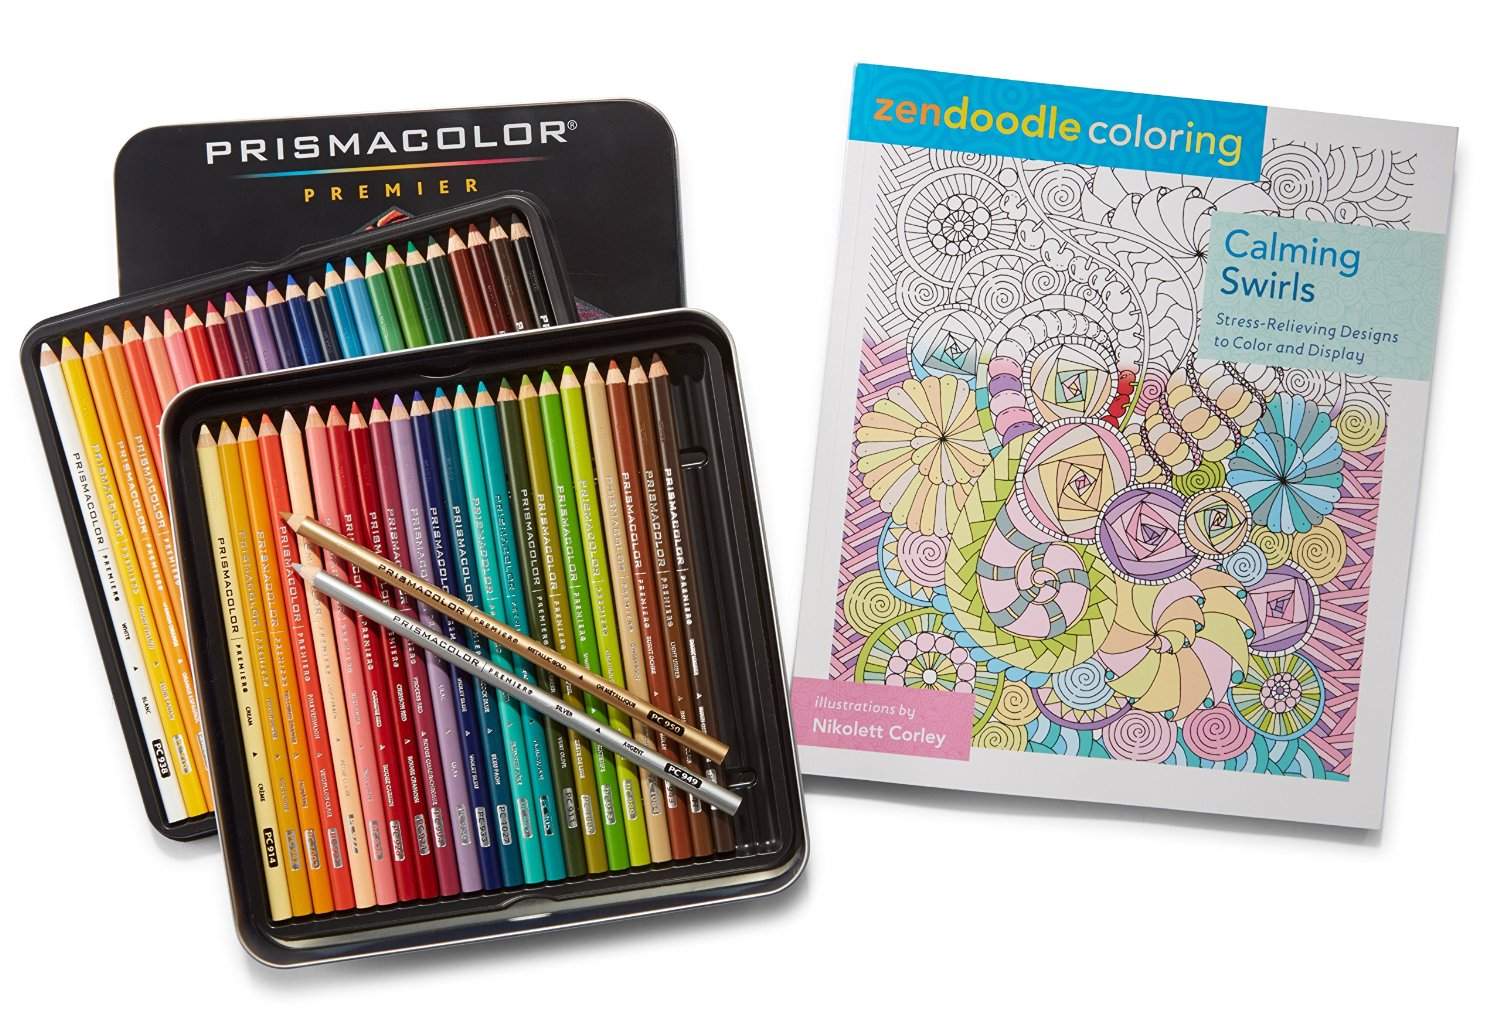 Prismacolor Premier Colored Pencils, Soft Core, 48 Pack and Adult Colring Book (Zendoodle Calming Swirls)